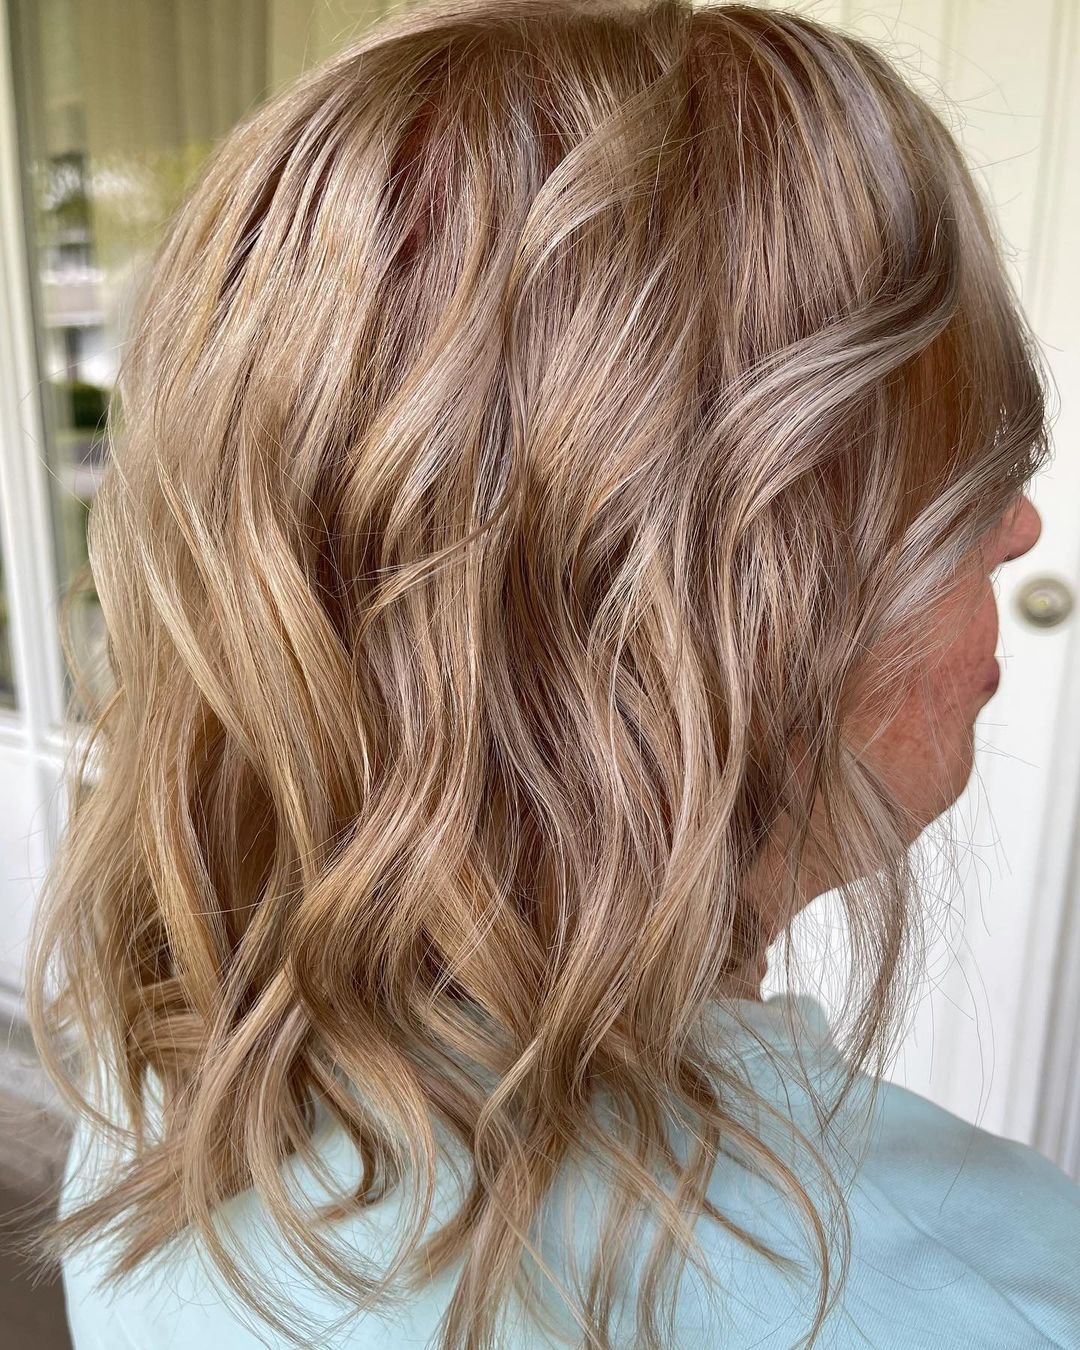 Medium-Length Hair for Over 50 and Overweight